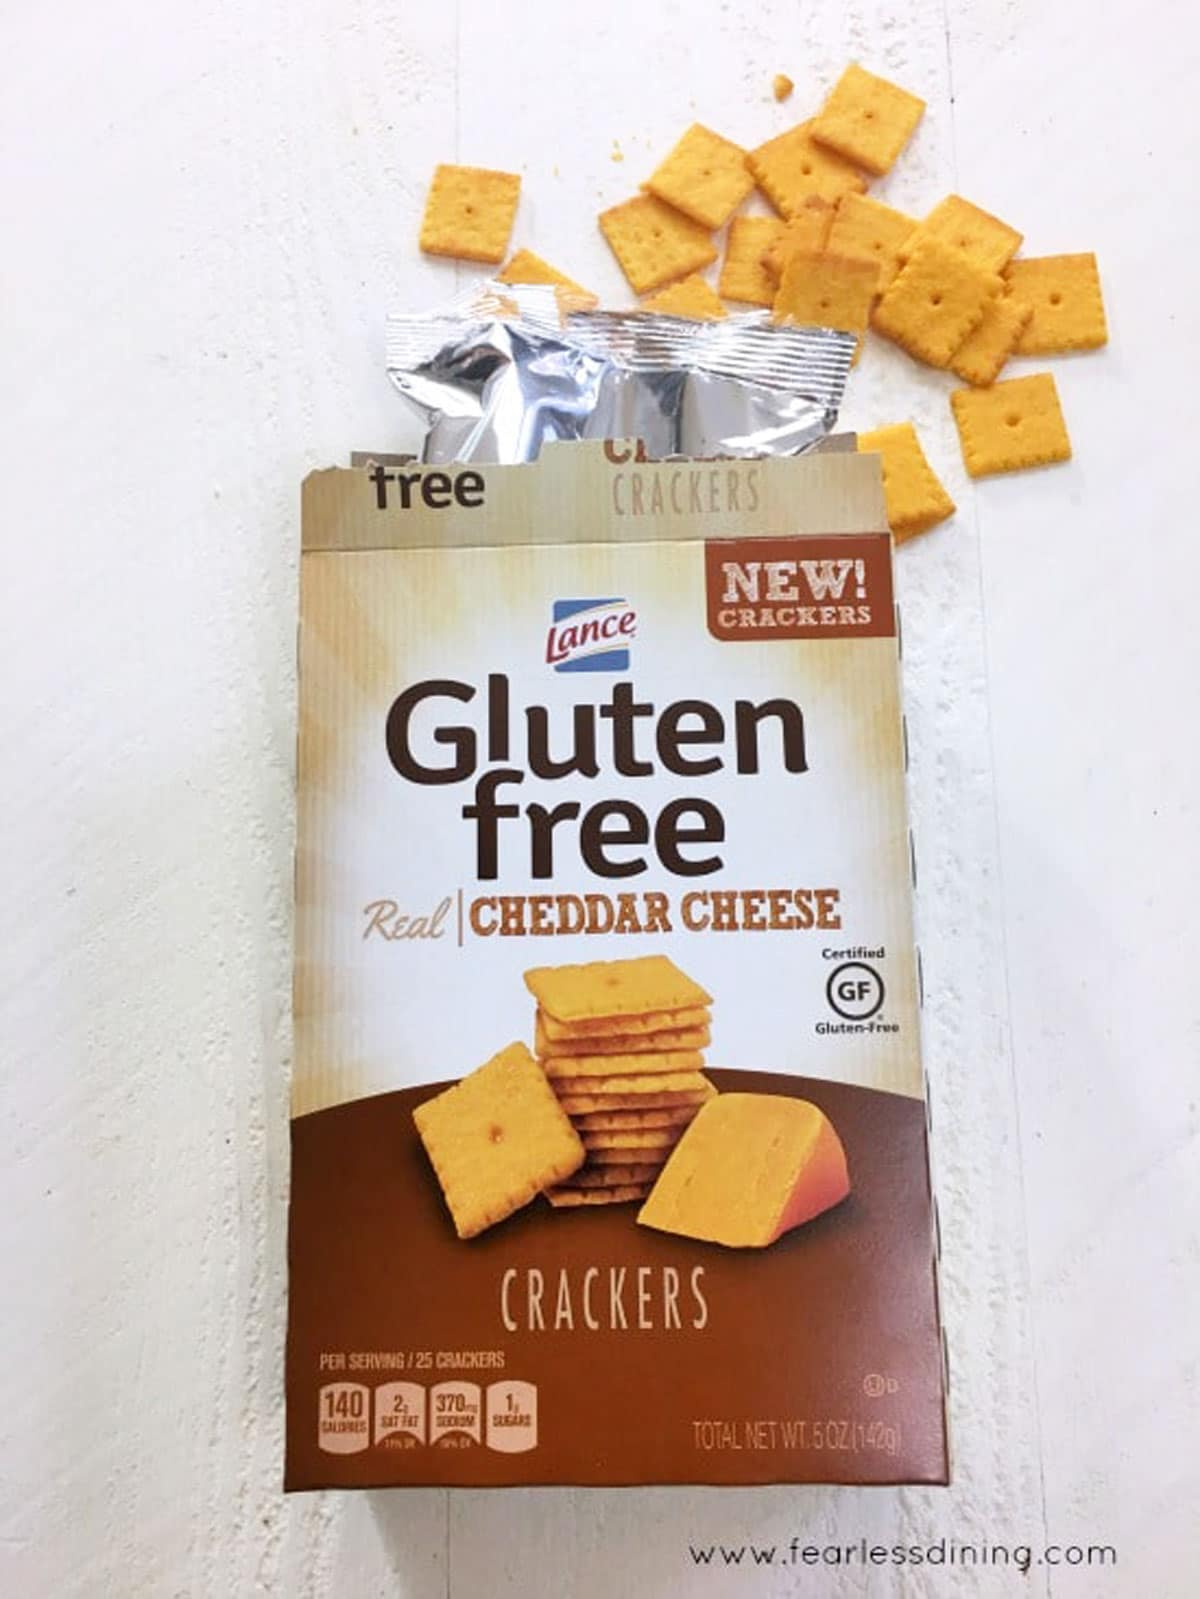 a box of Lance cheese crackers